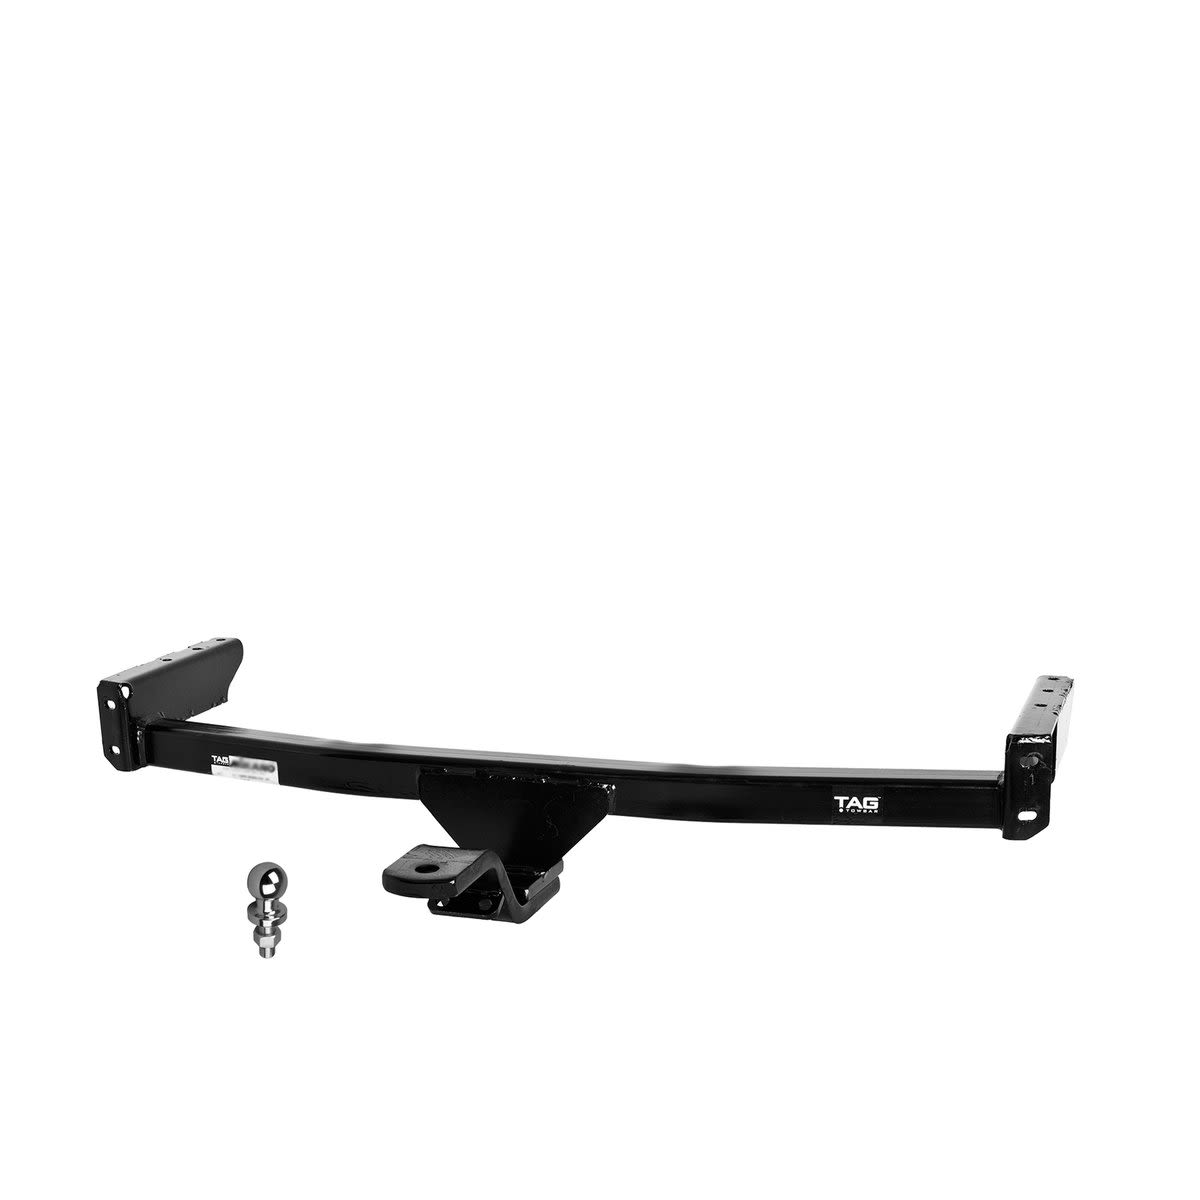 TAG Light Duty Towbar to suit Mazda 3 (03/2004 - 03/2009) - No Wiring Harness